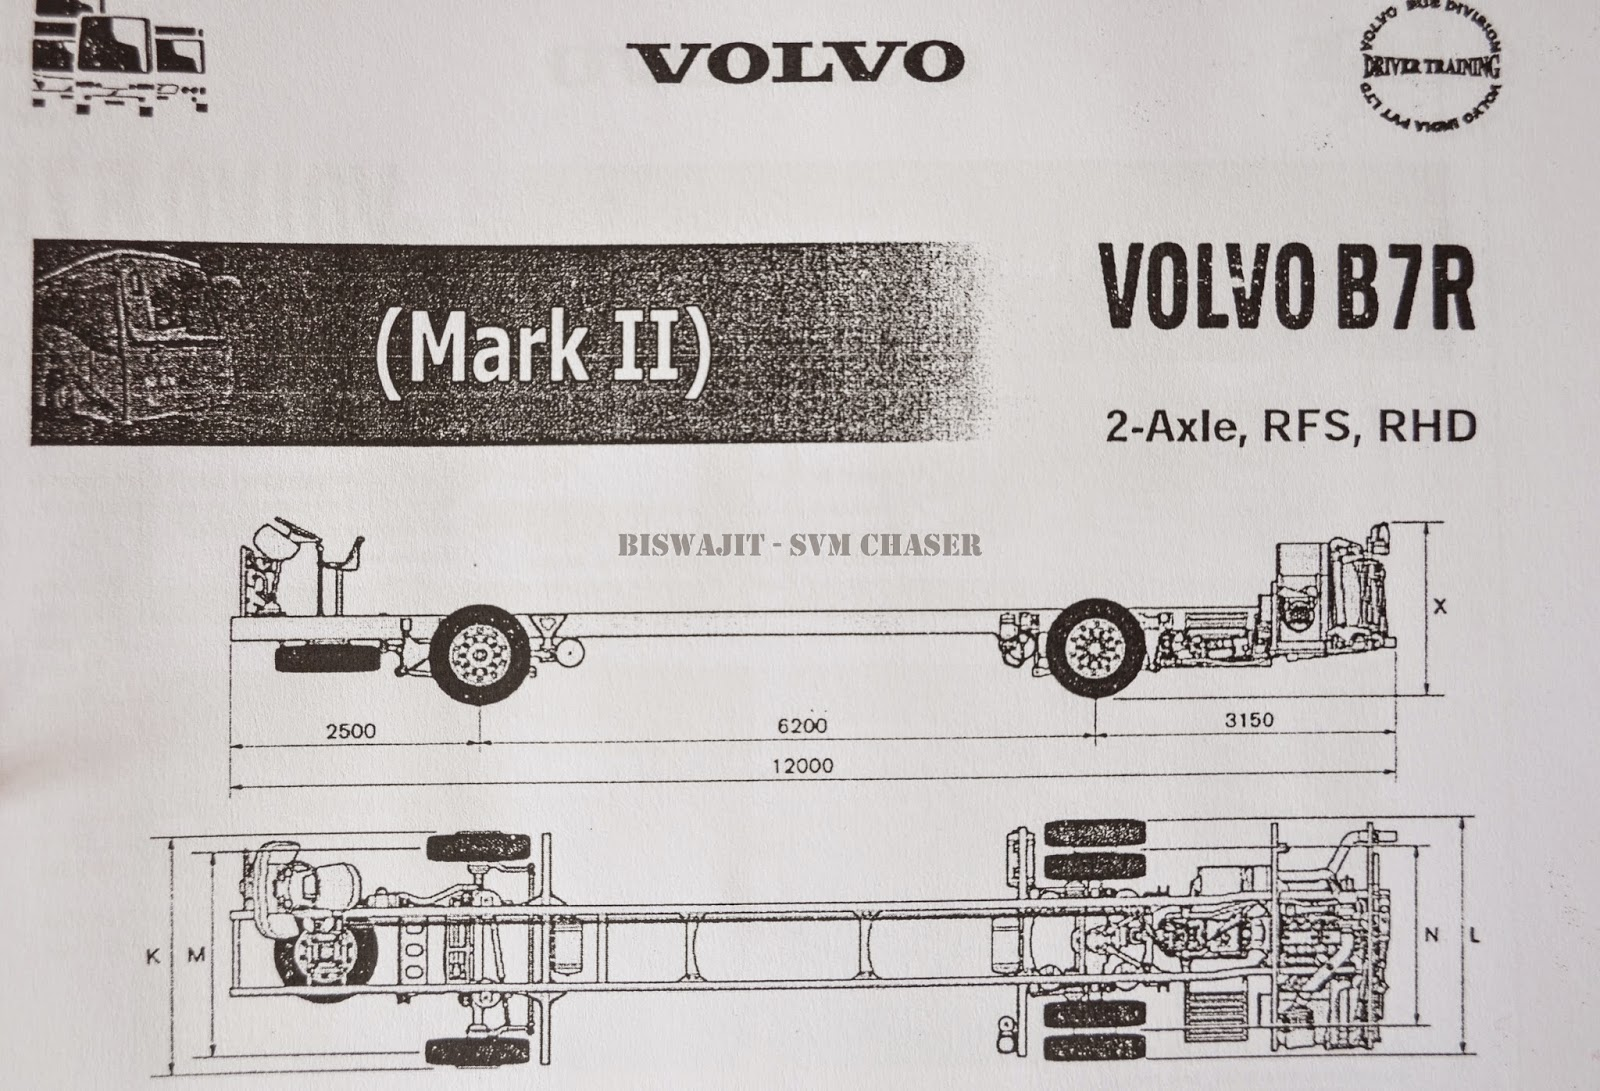 volvo b7r mark ii - detailed specifications | biswajit svm chaser